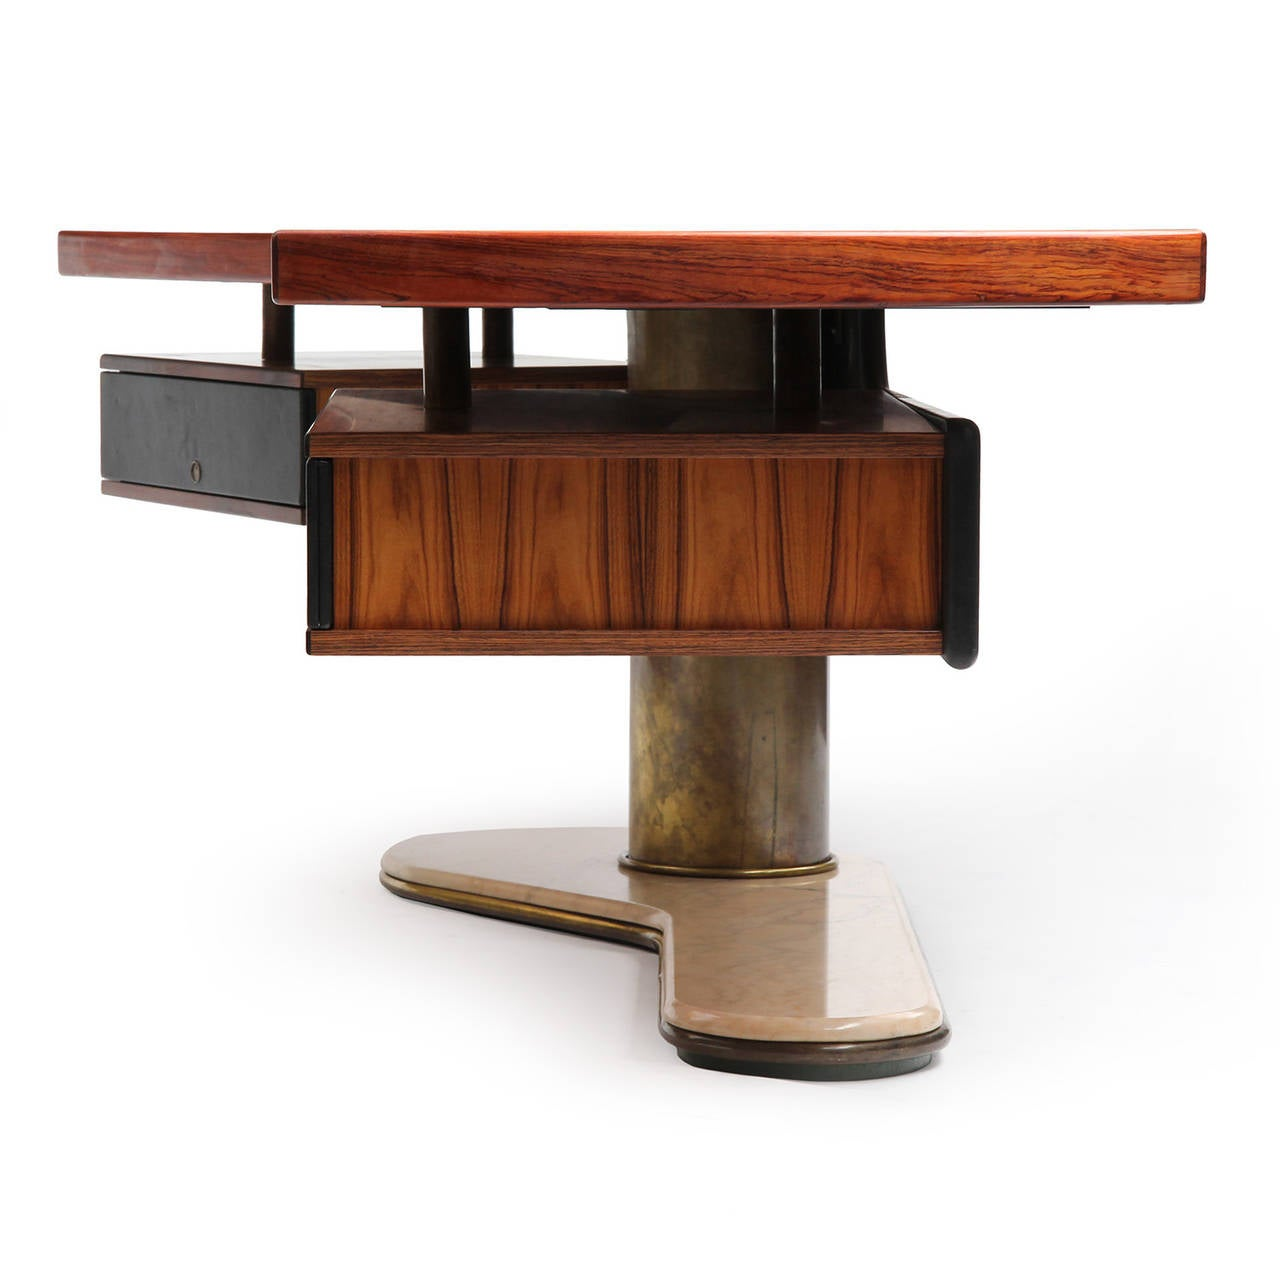 Italian Executive Desk For Sale at 1stdibs